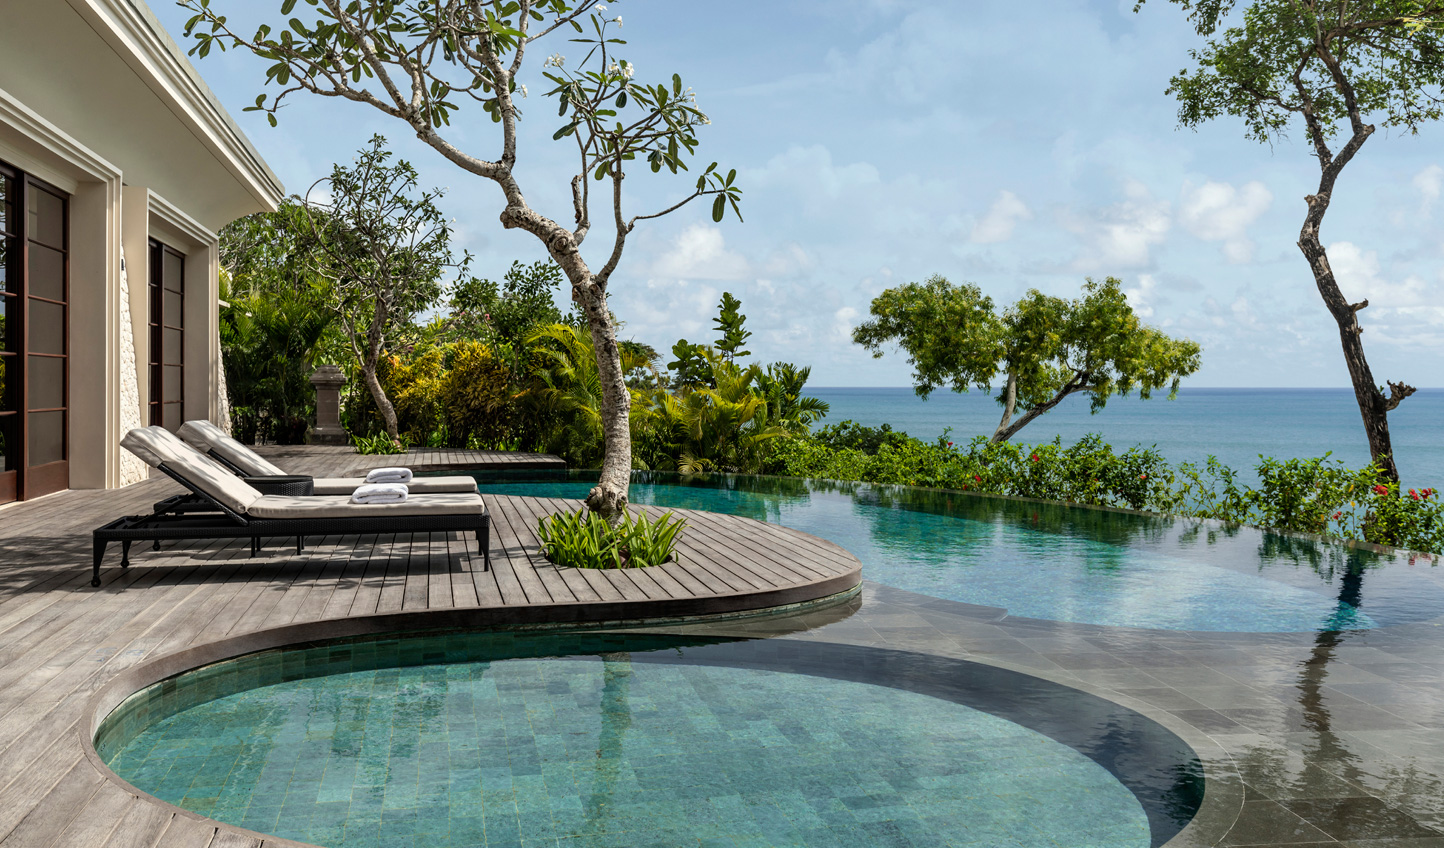 Hideaway at Bali's most luxurious villa - the Imperial Villa